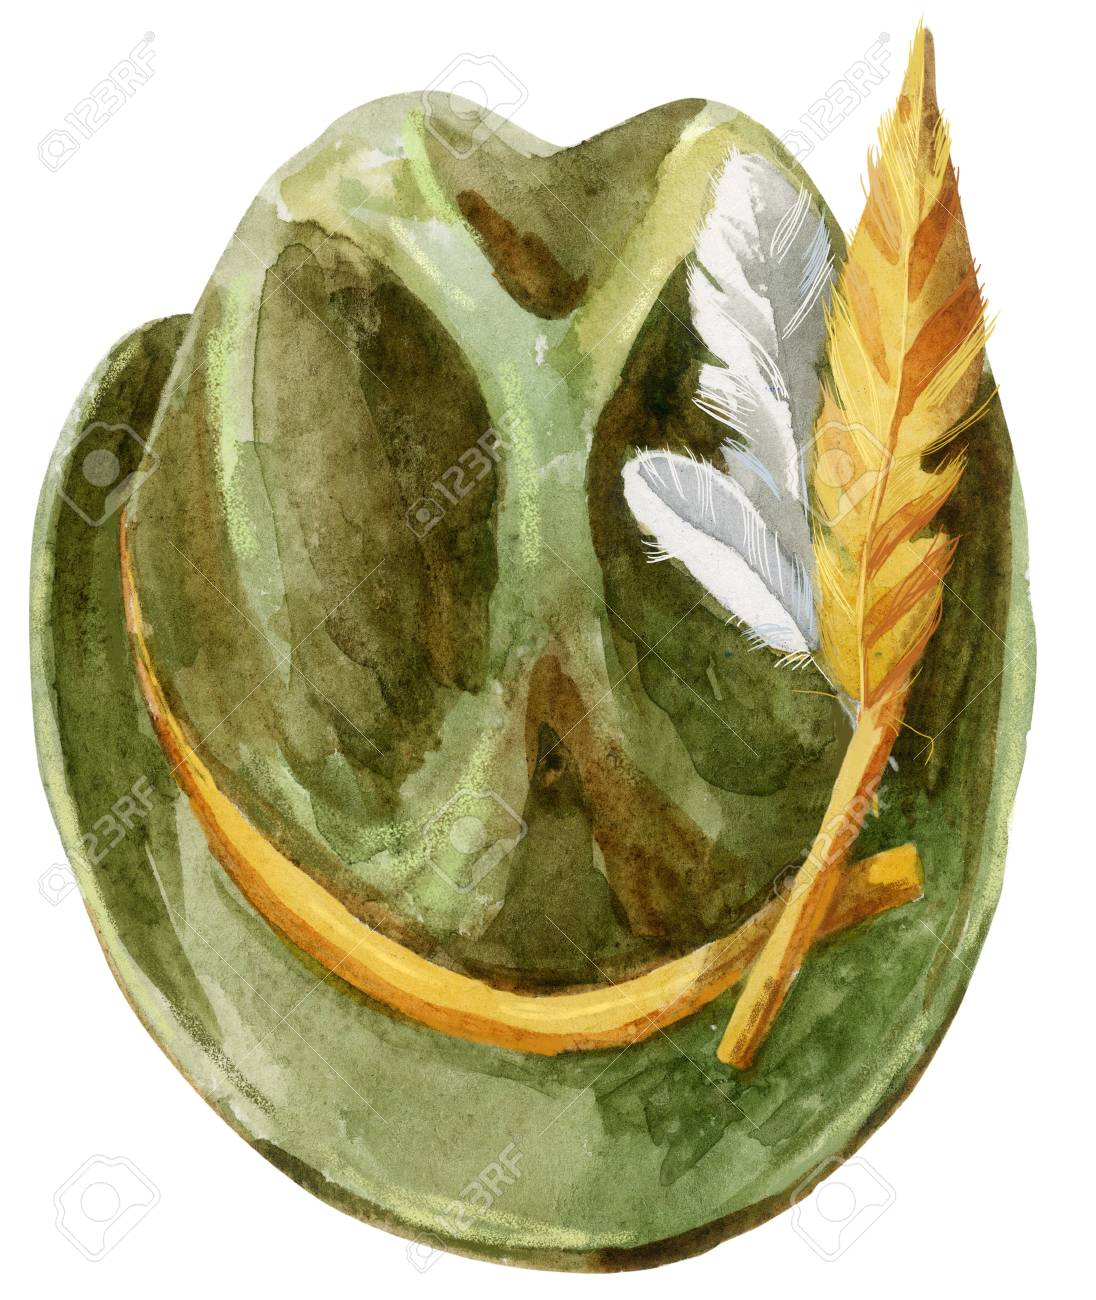 2b9f16b58c0 Green Tyrolean hat with feathers for Oktoberfest Stock Photo - 92271422